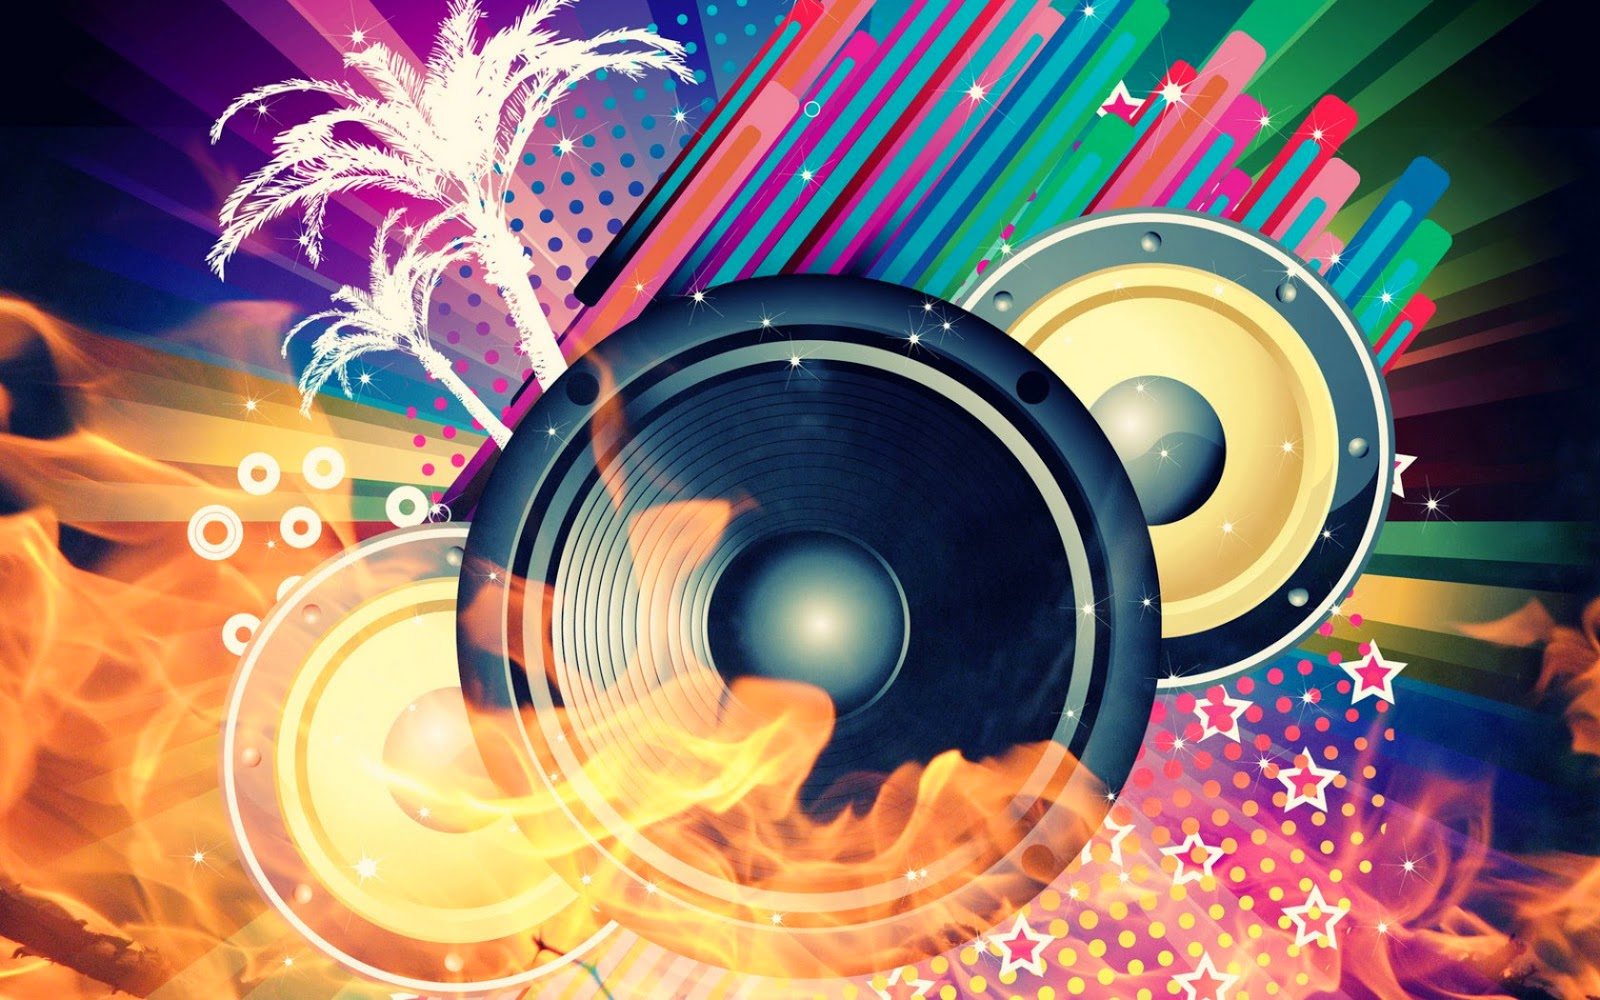 abstract music hd wallpapers For desktop